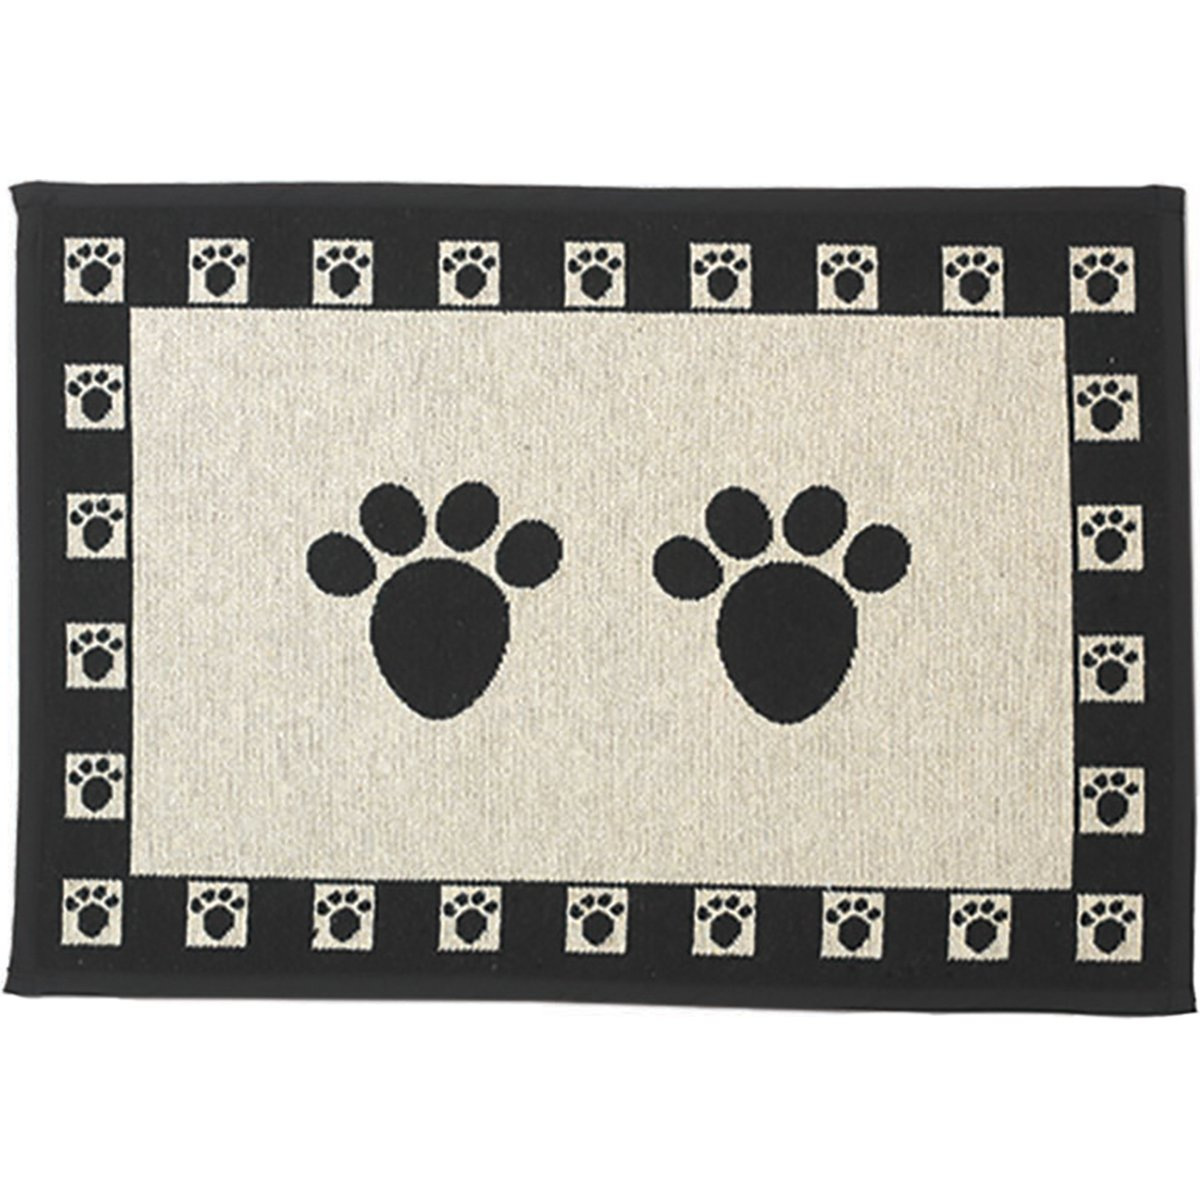 PetRageous Paws Tapestry Mat Feeder Large 28 x 18 Natural Black